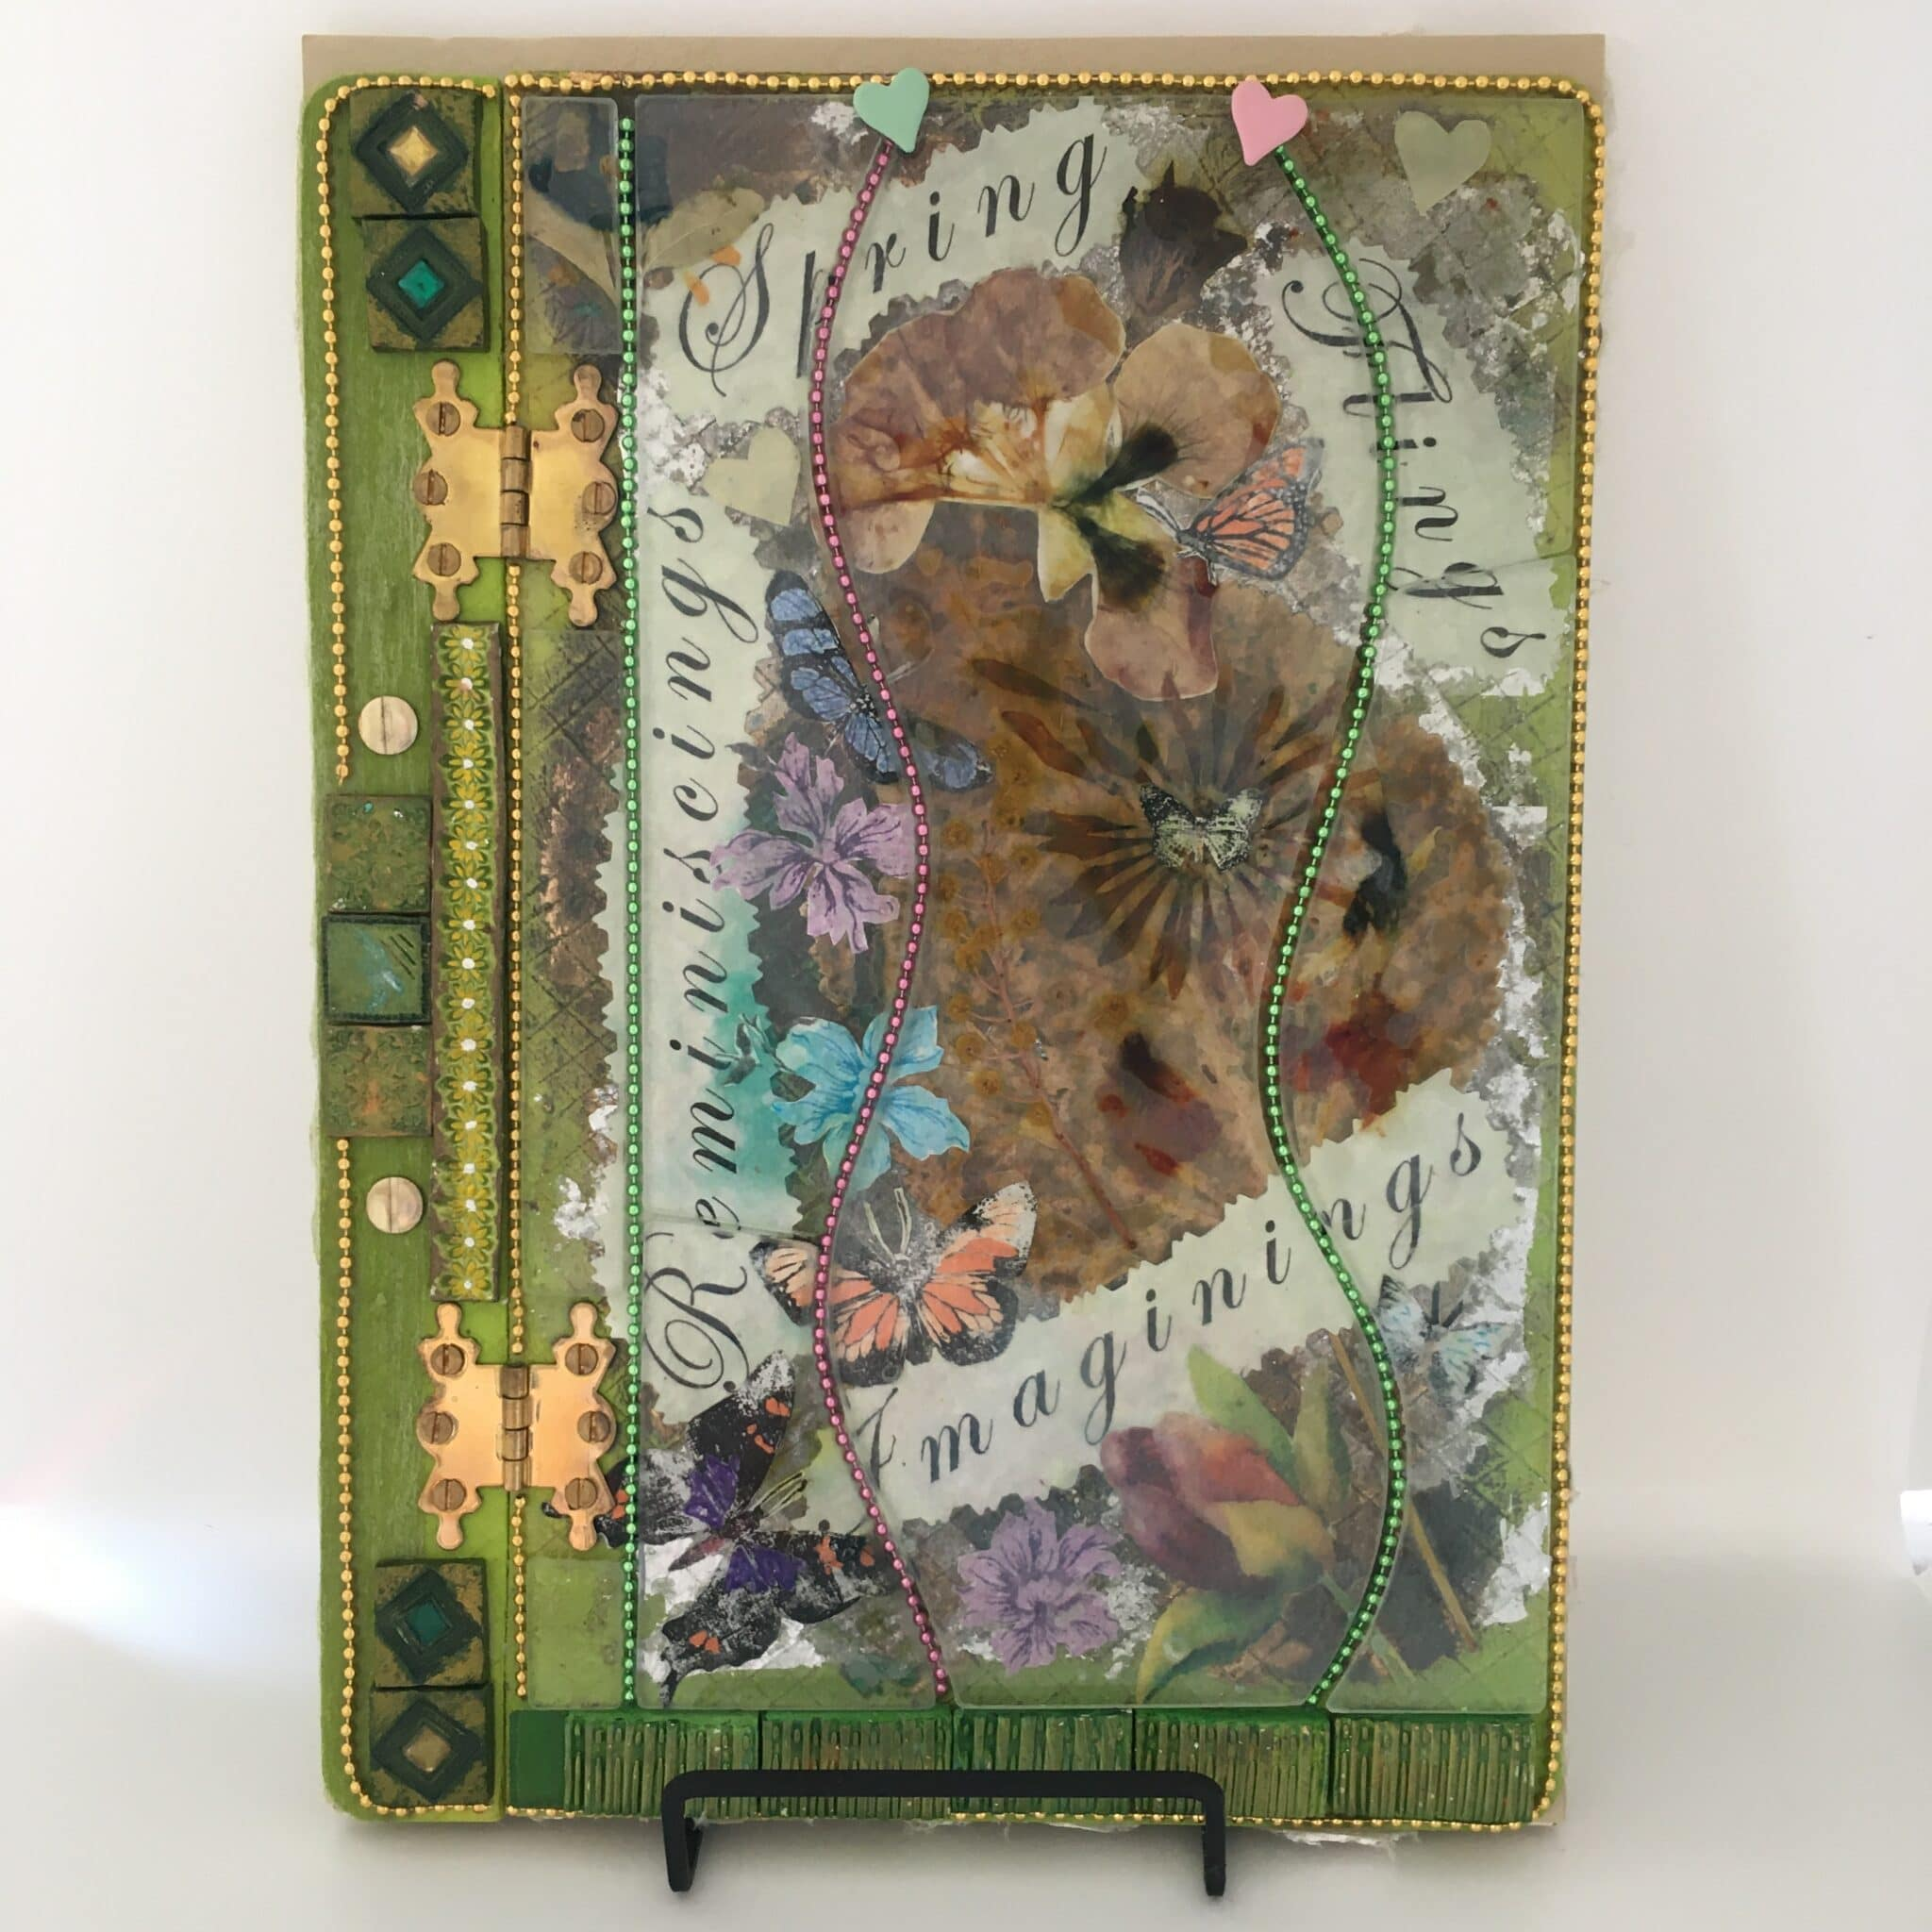 Art Journal: Spring Flings, Imaginings, Reminiscings By Amethyst Moon Art